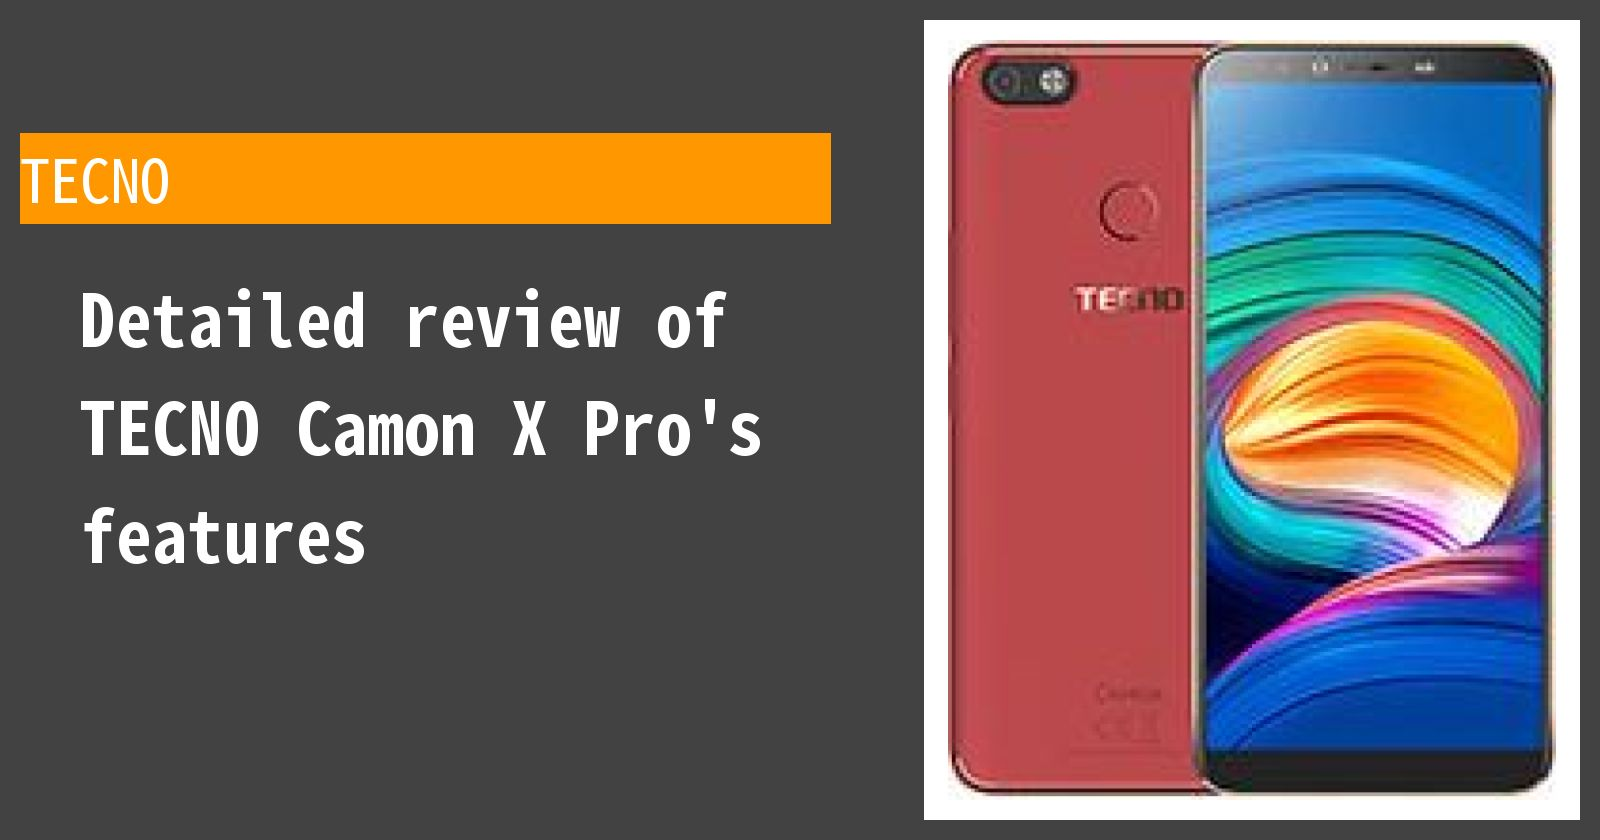 What are the merits and demerits of AQUOS Xx2? Performance